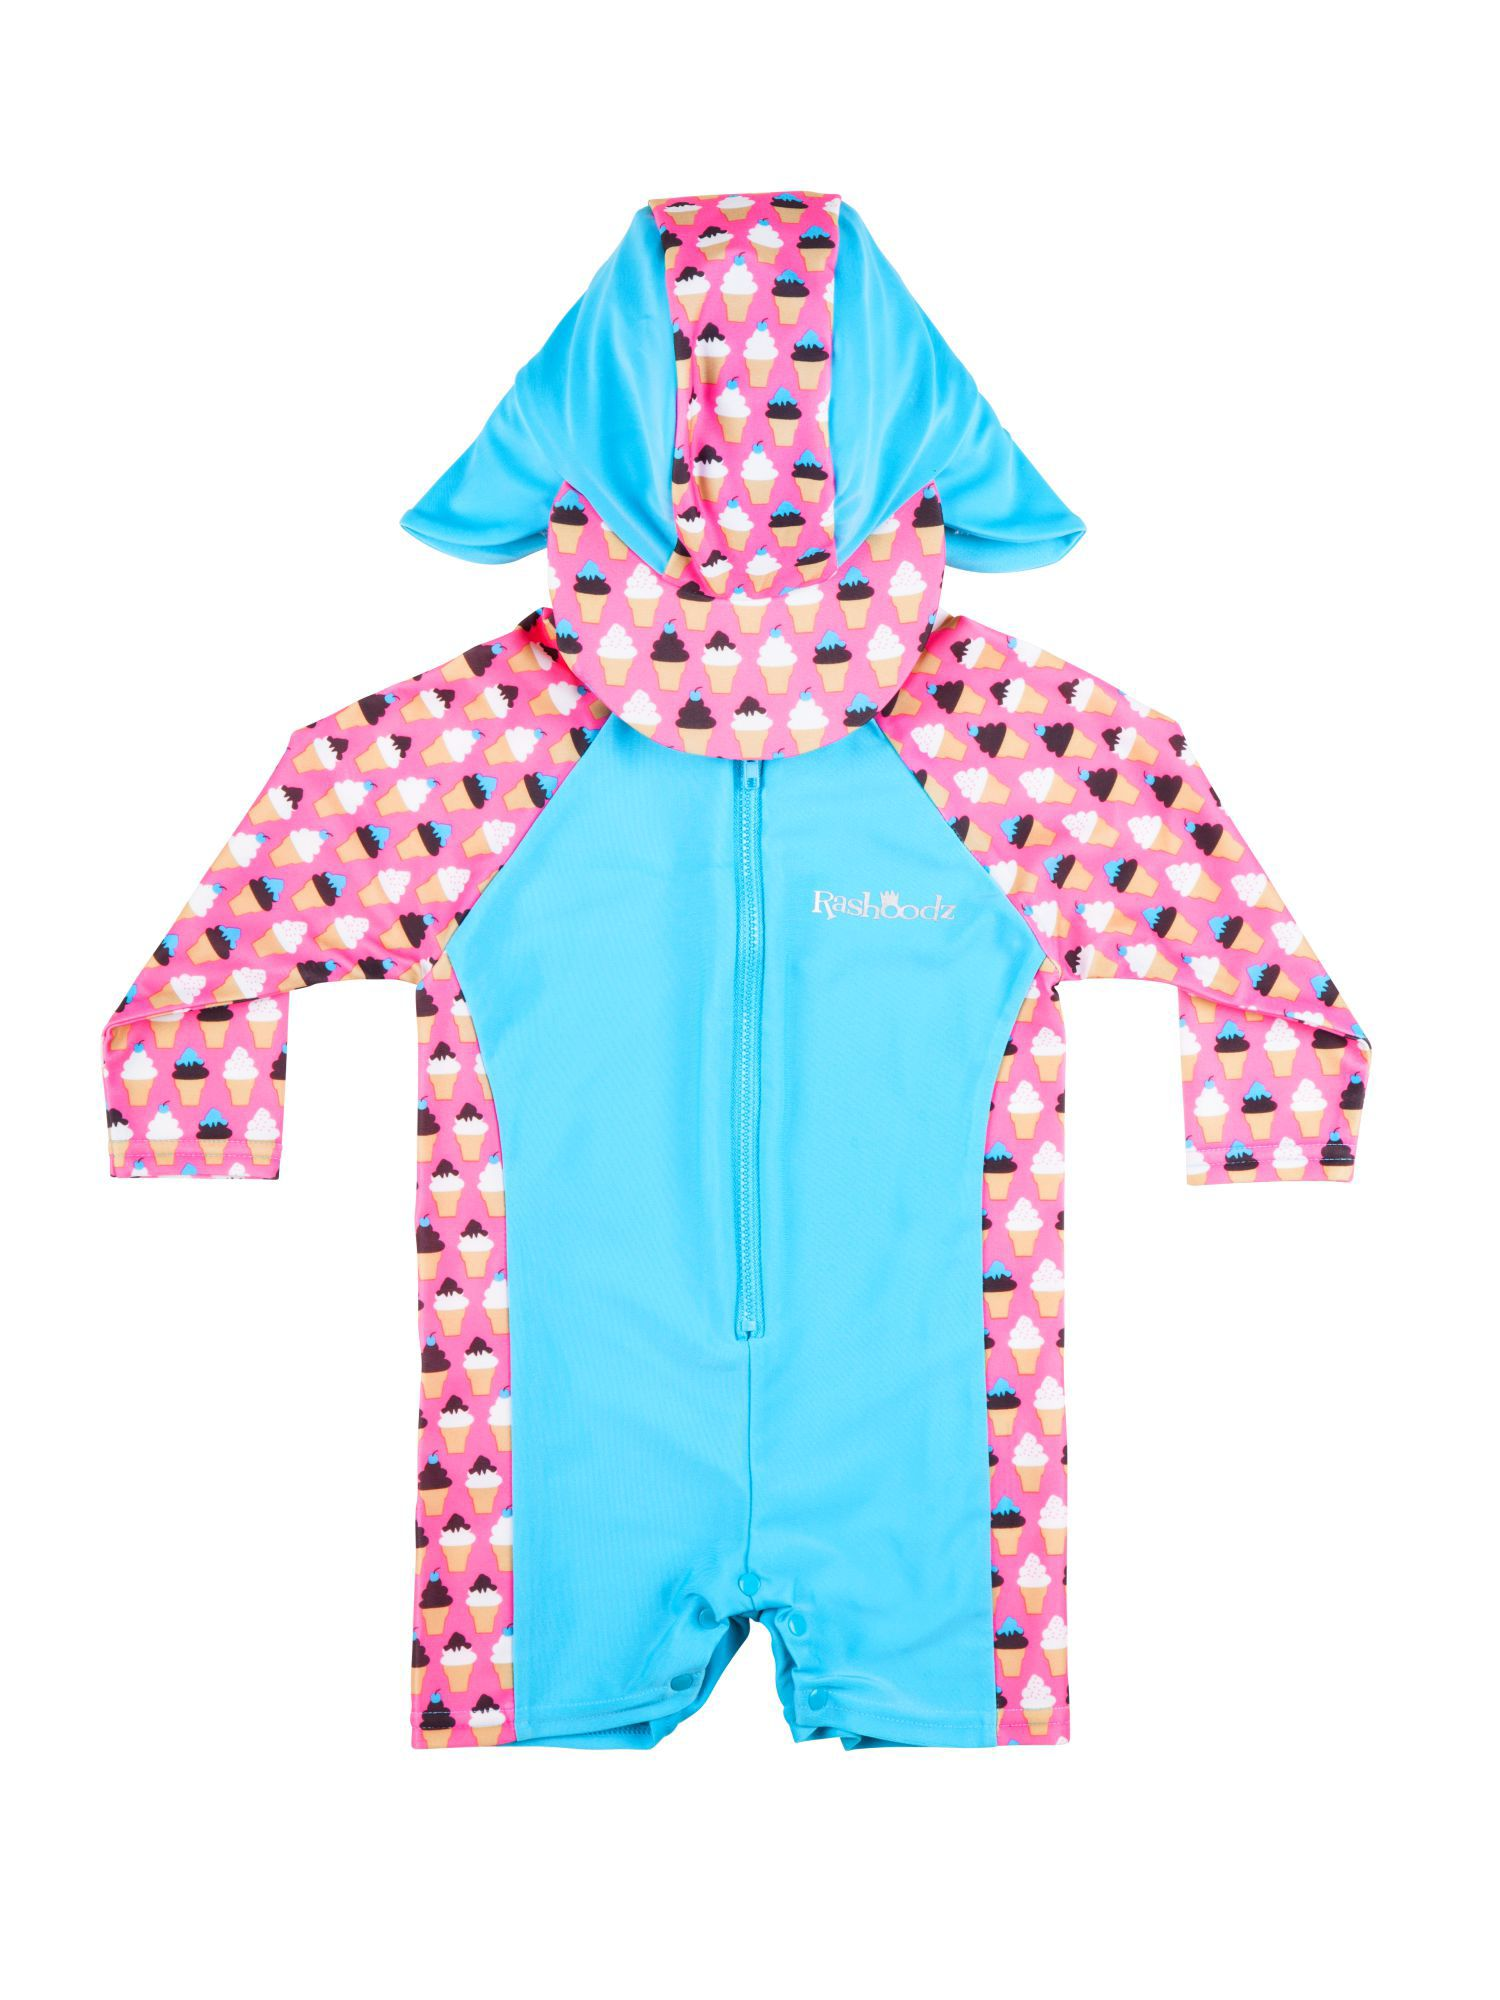 Rashoodz Girl`s sunsuit with icecream print Blue